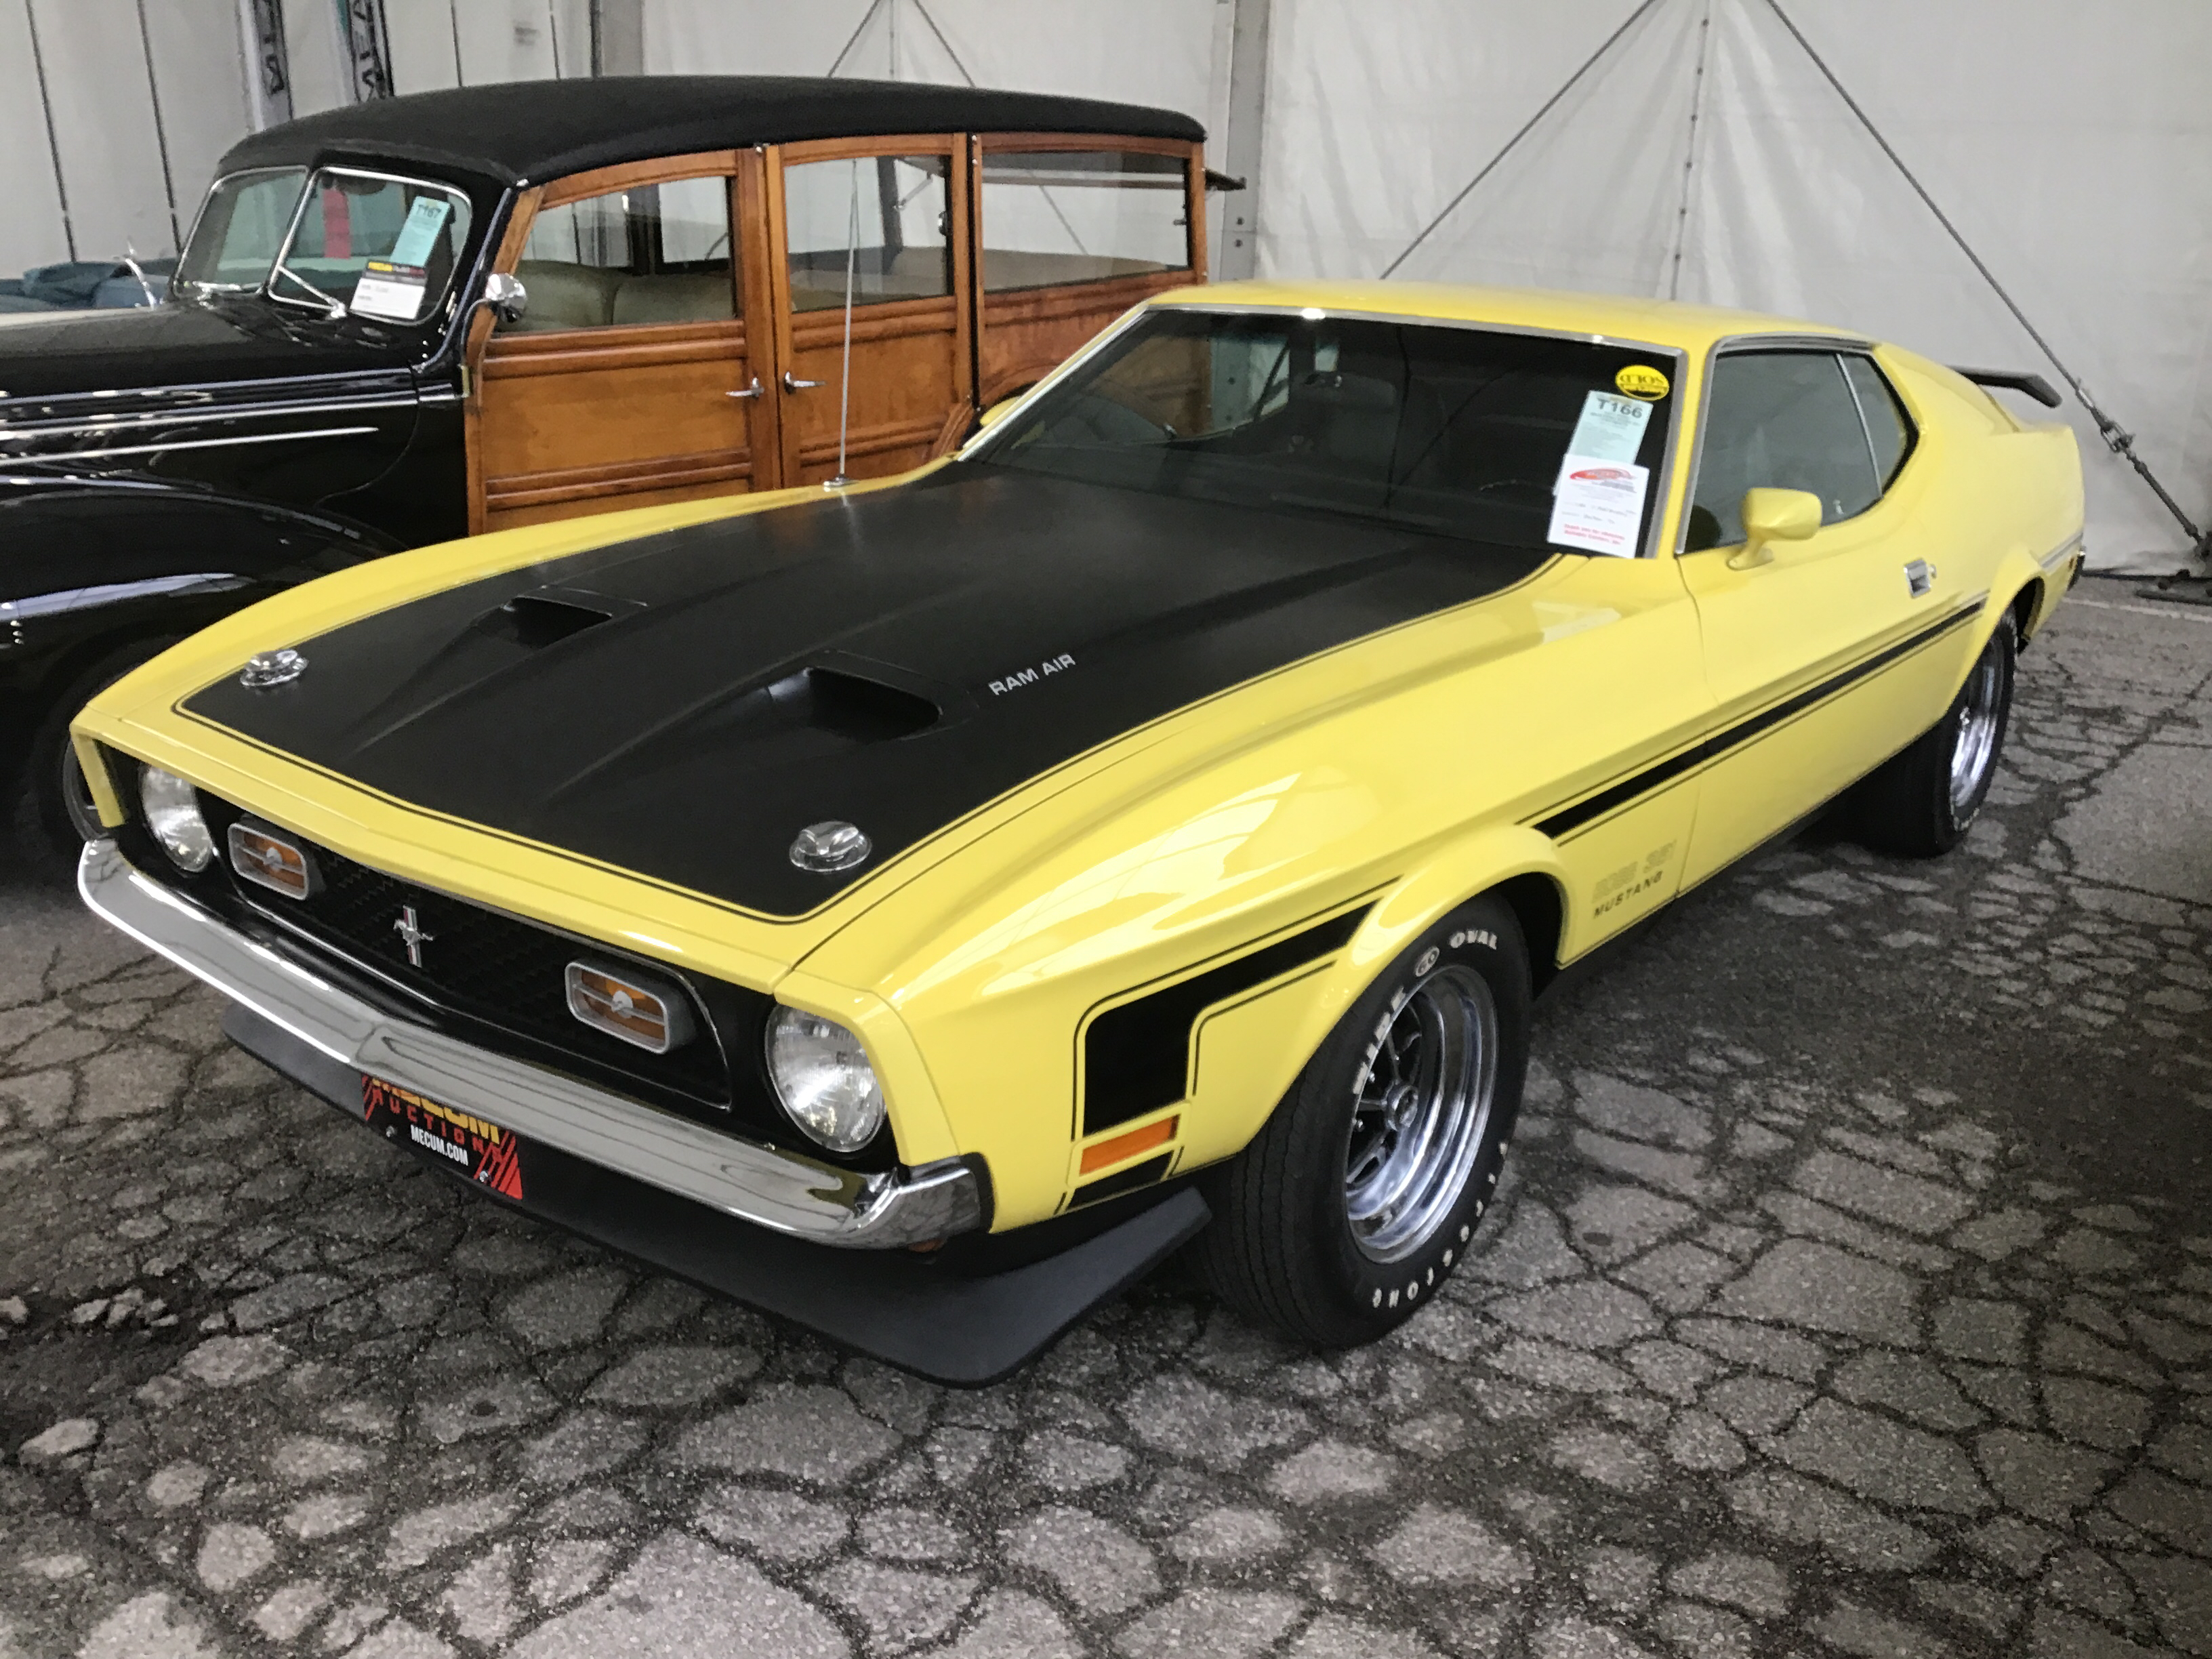 1971 ford mustang boss 351 values hagerty valuation tool